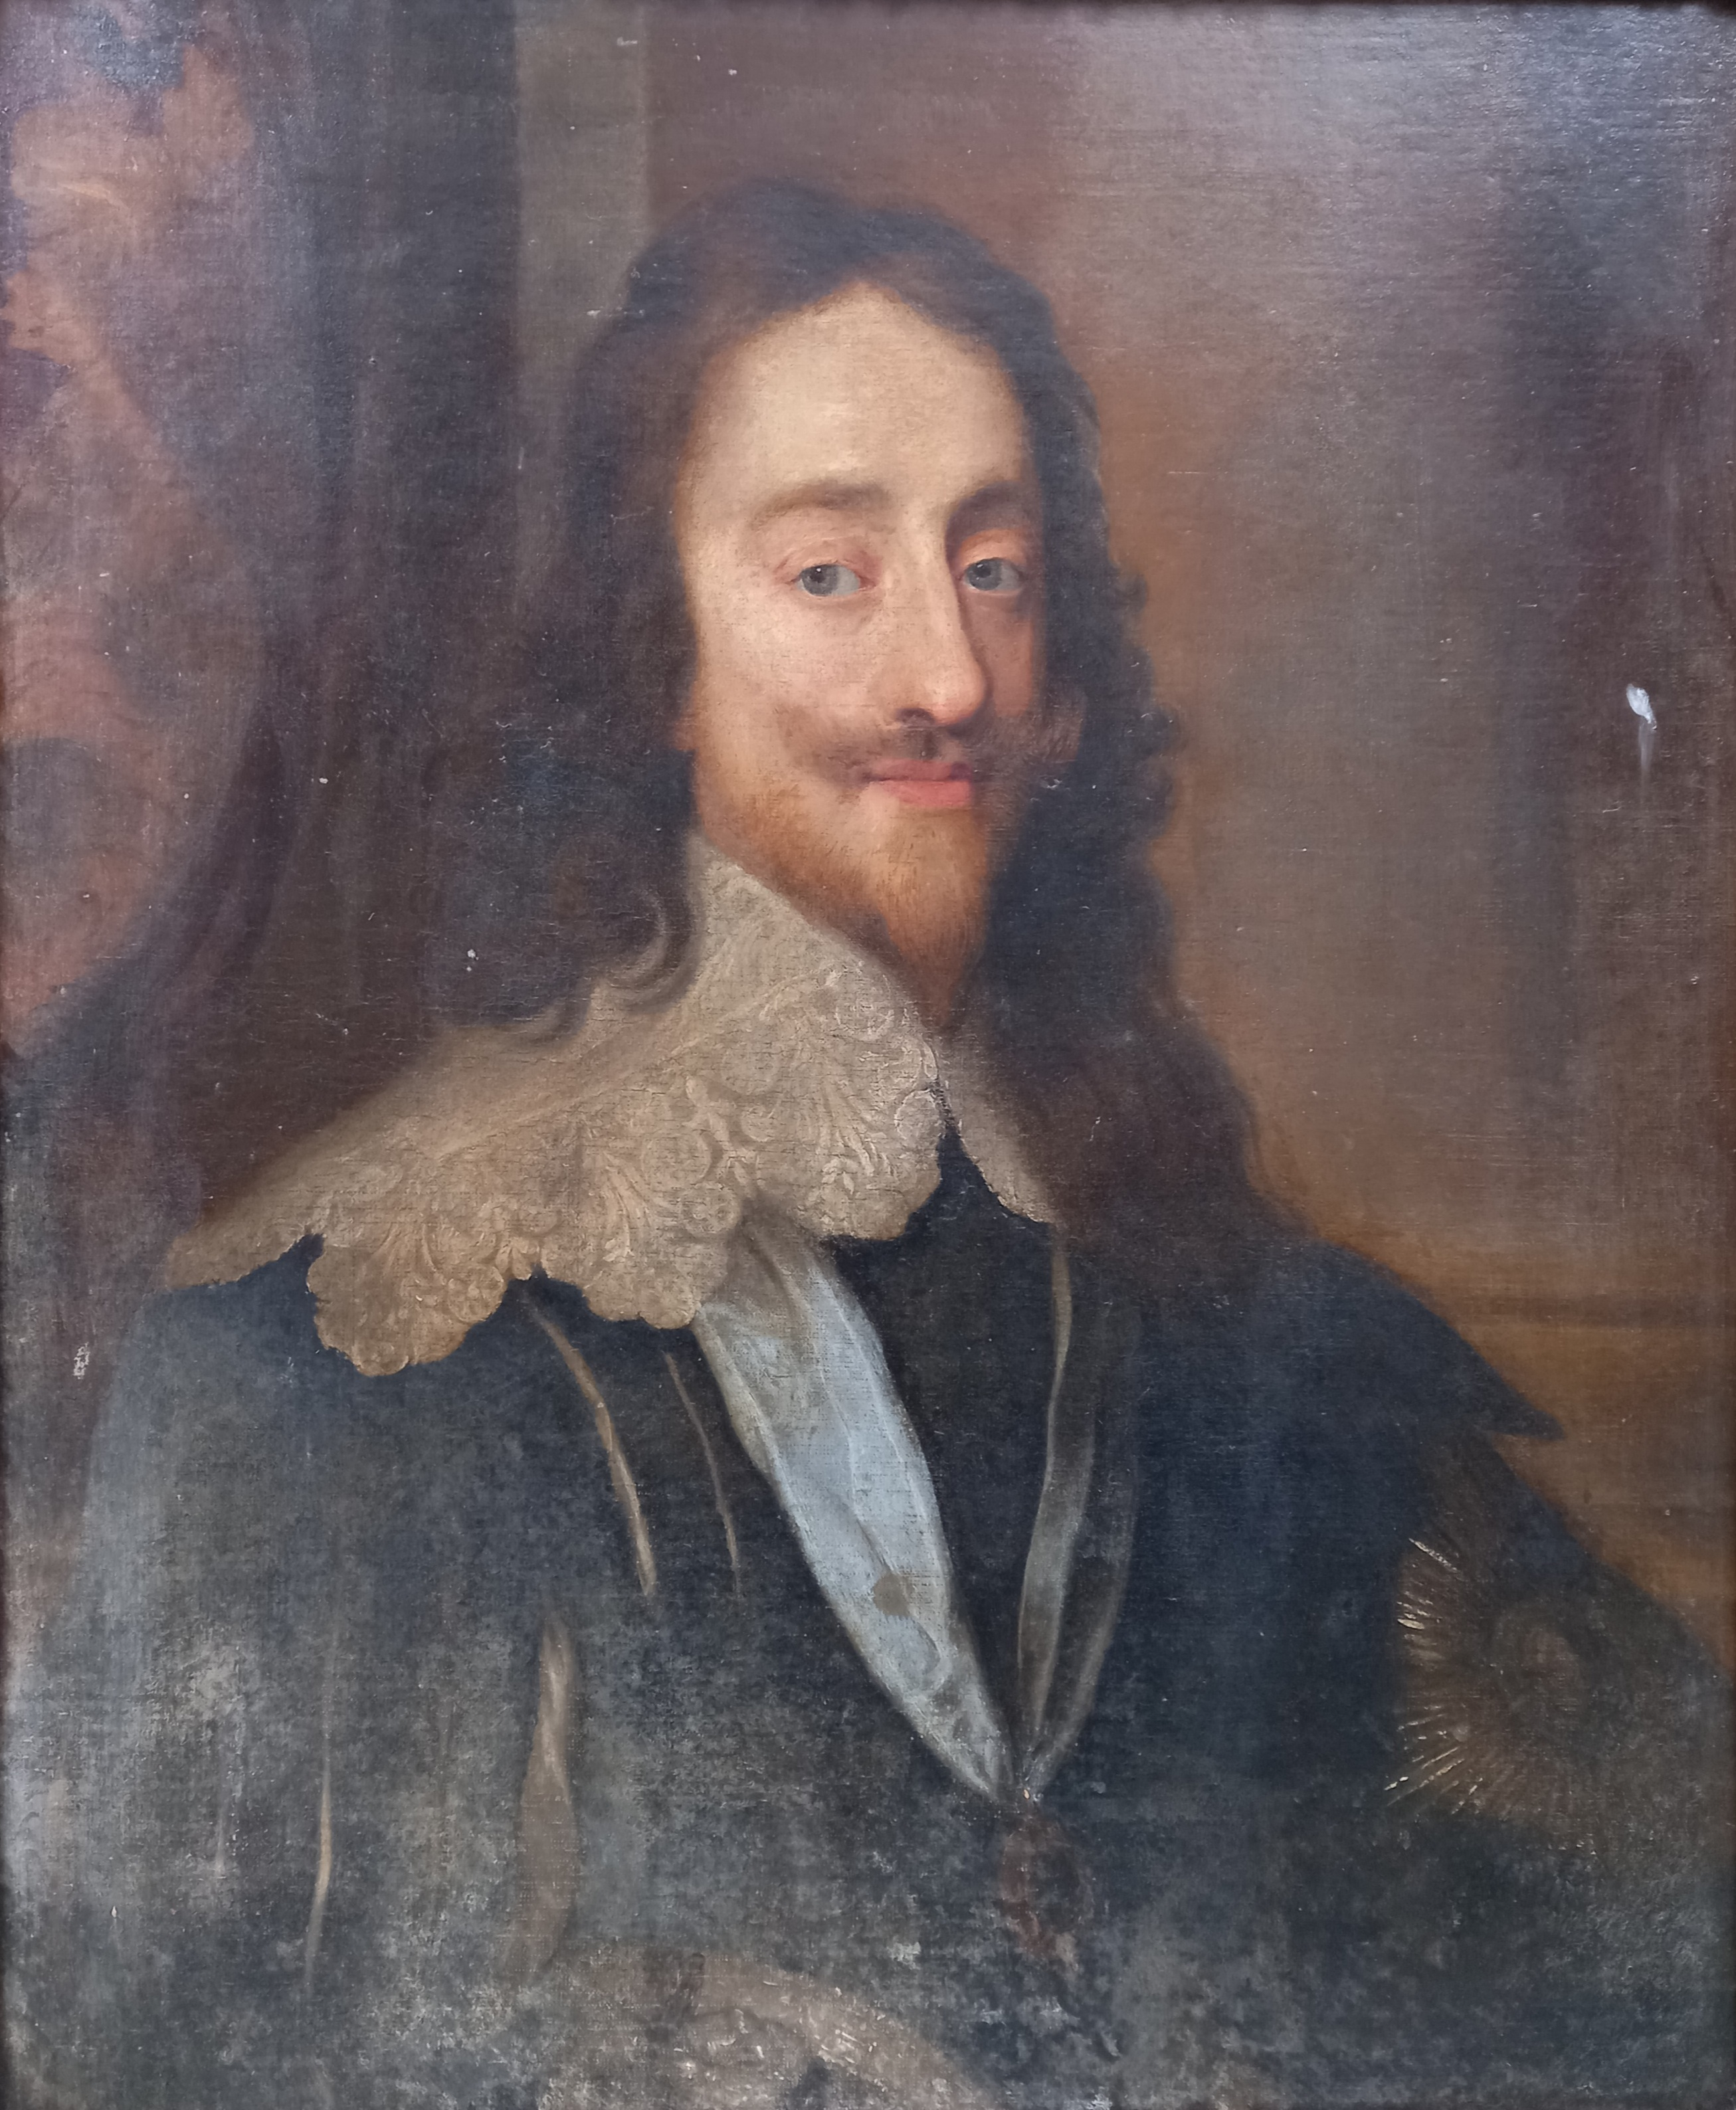 Follower of Sir Antony Van Dyck (1599-1641), Portrait of Charles I, Head and shoulders, with lace - Image 9 of 22